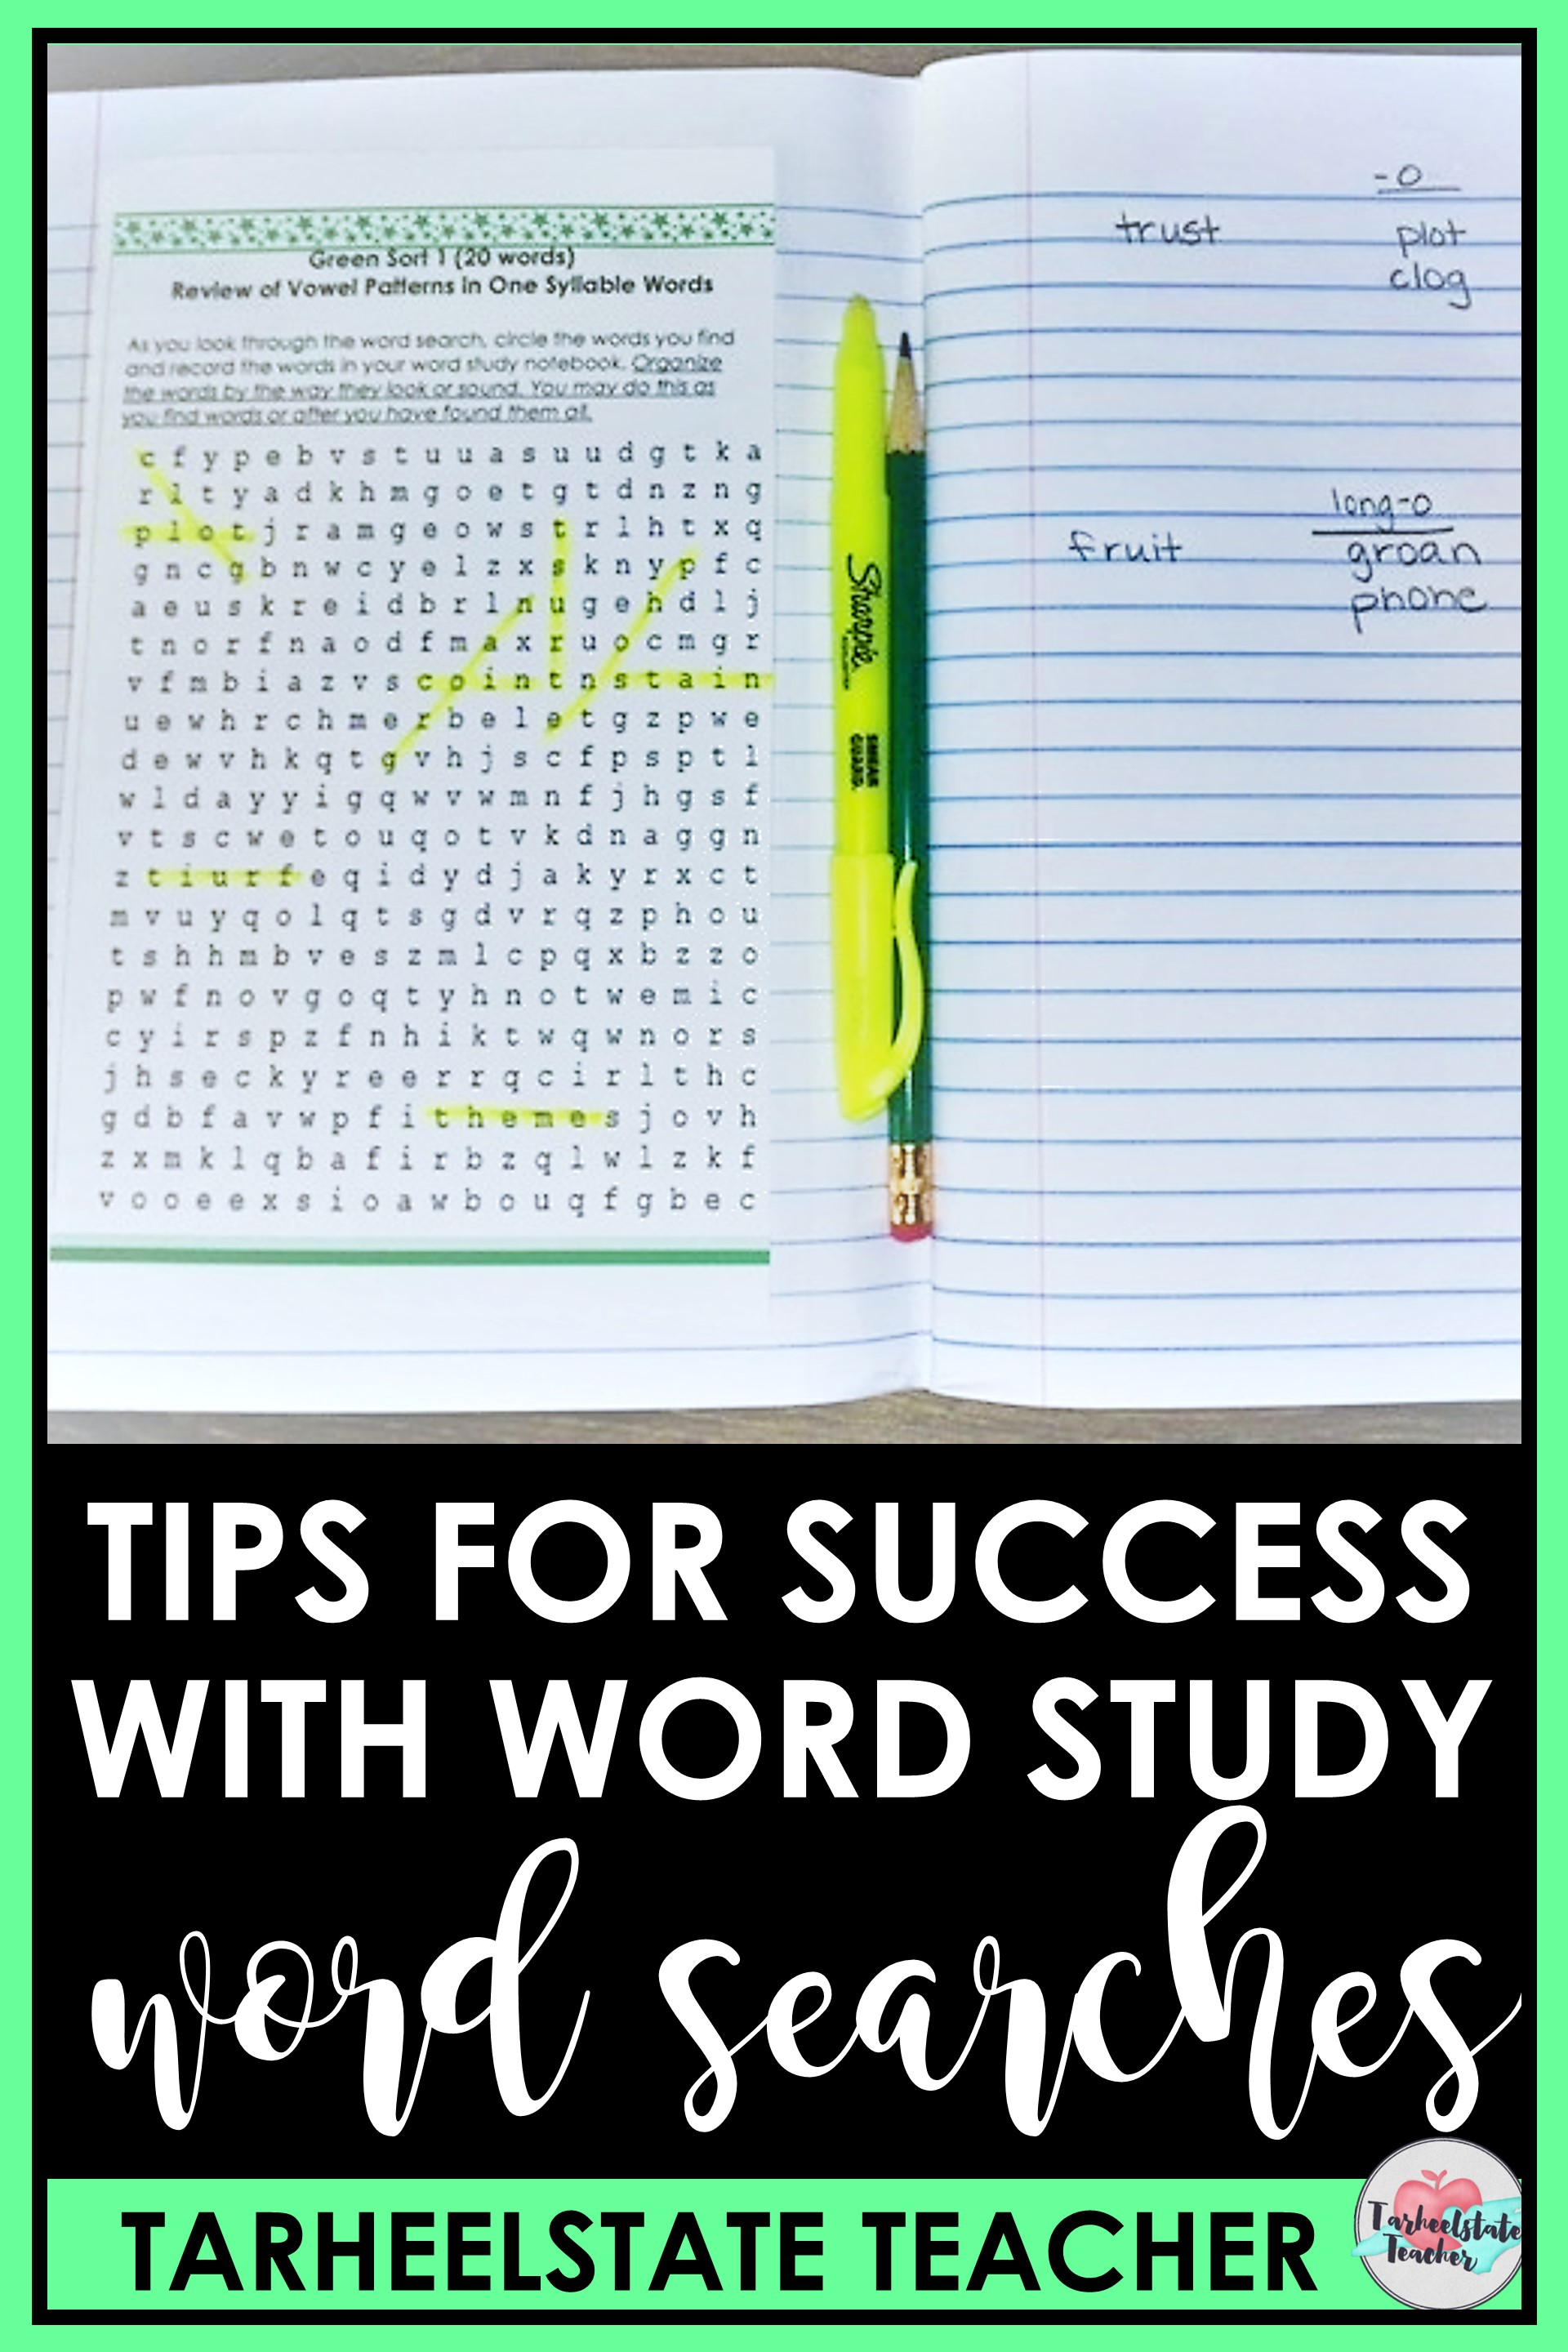 tips for word seaches for word study.JPG